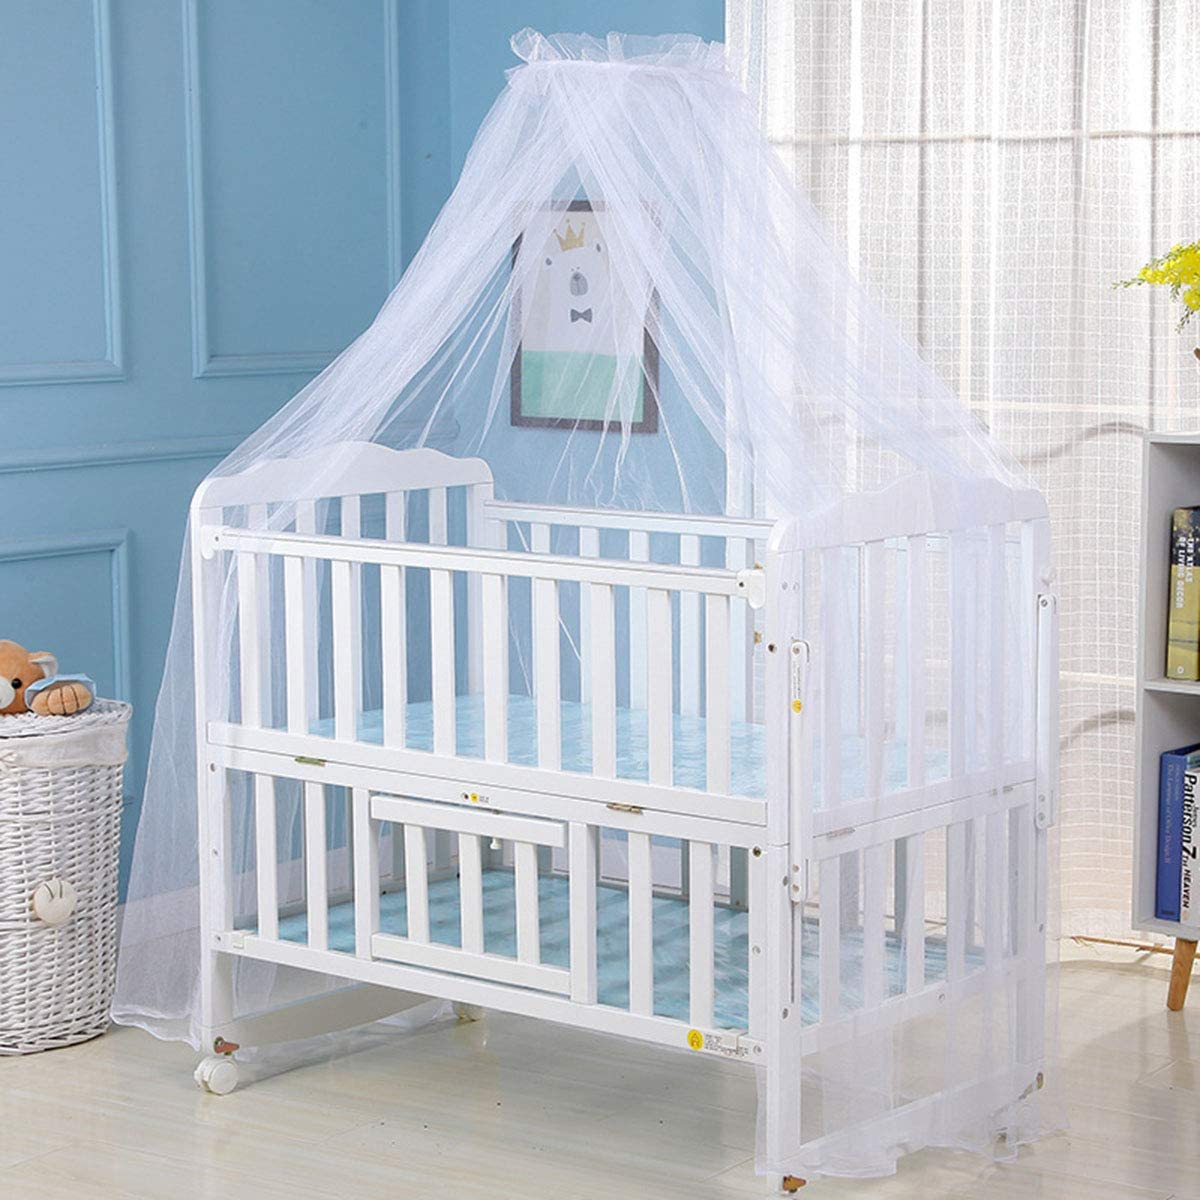 DaMohony Baby Crib Tent Dome Net Baby Child Mosquito Net Newborn Foldable Mosquito Mesh Net Cover Protects Against Mosquito Bites /& Toddlers